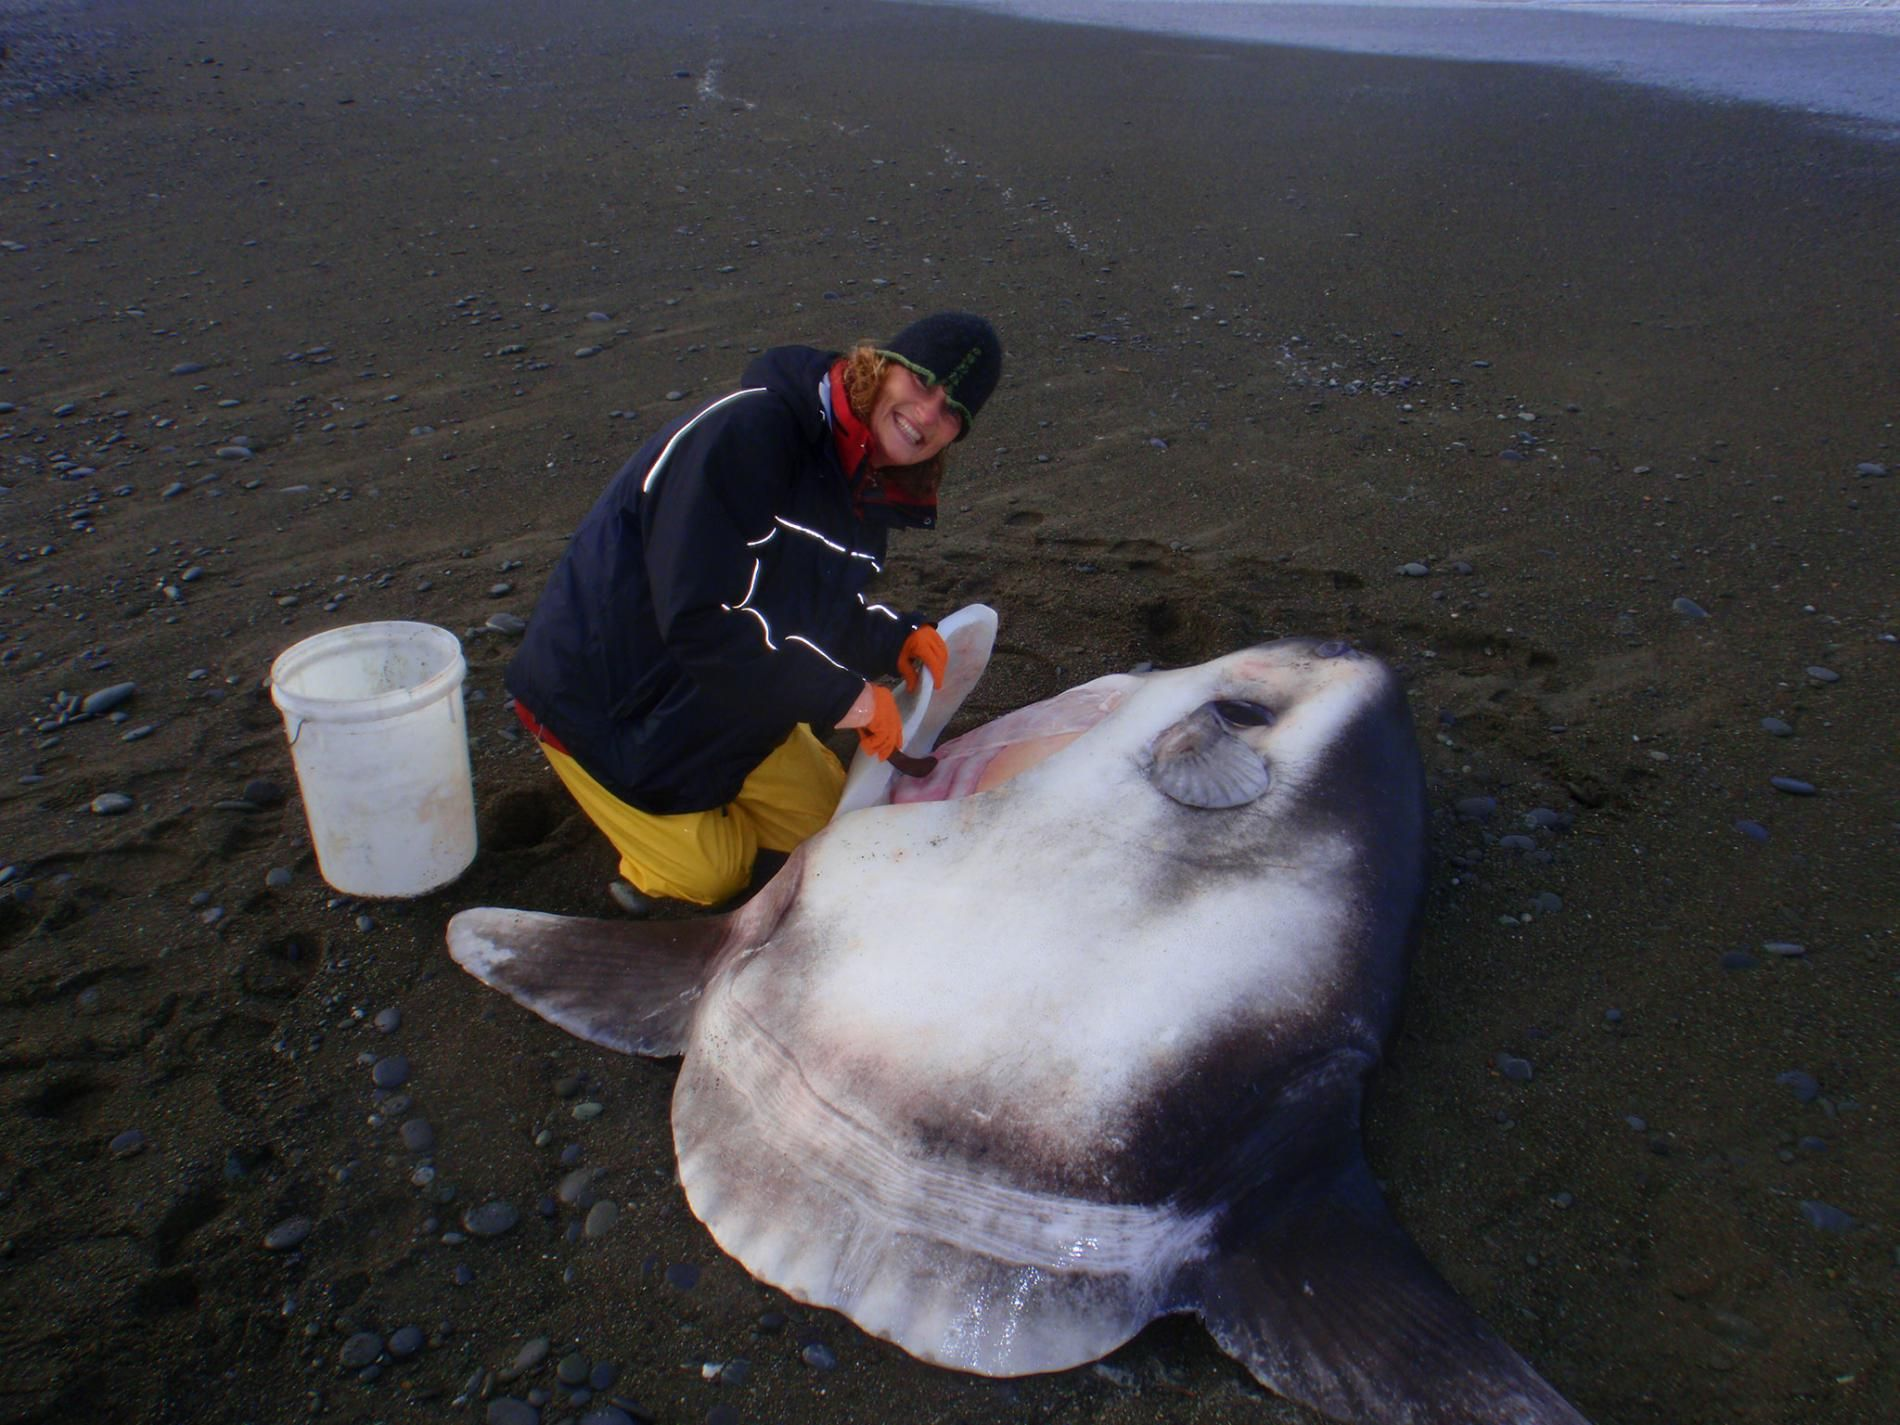 Massive Two Ton Fish Species Discovered Fish Species Weird Creatures